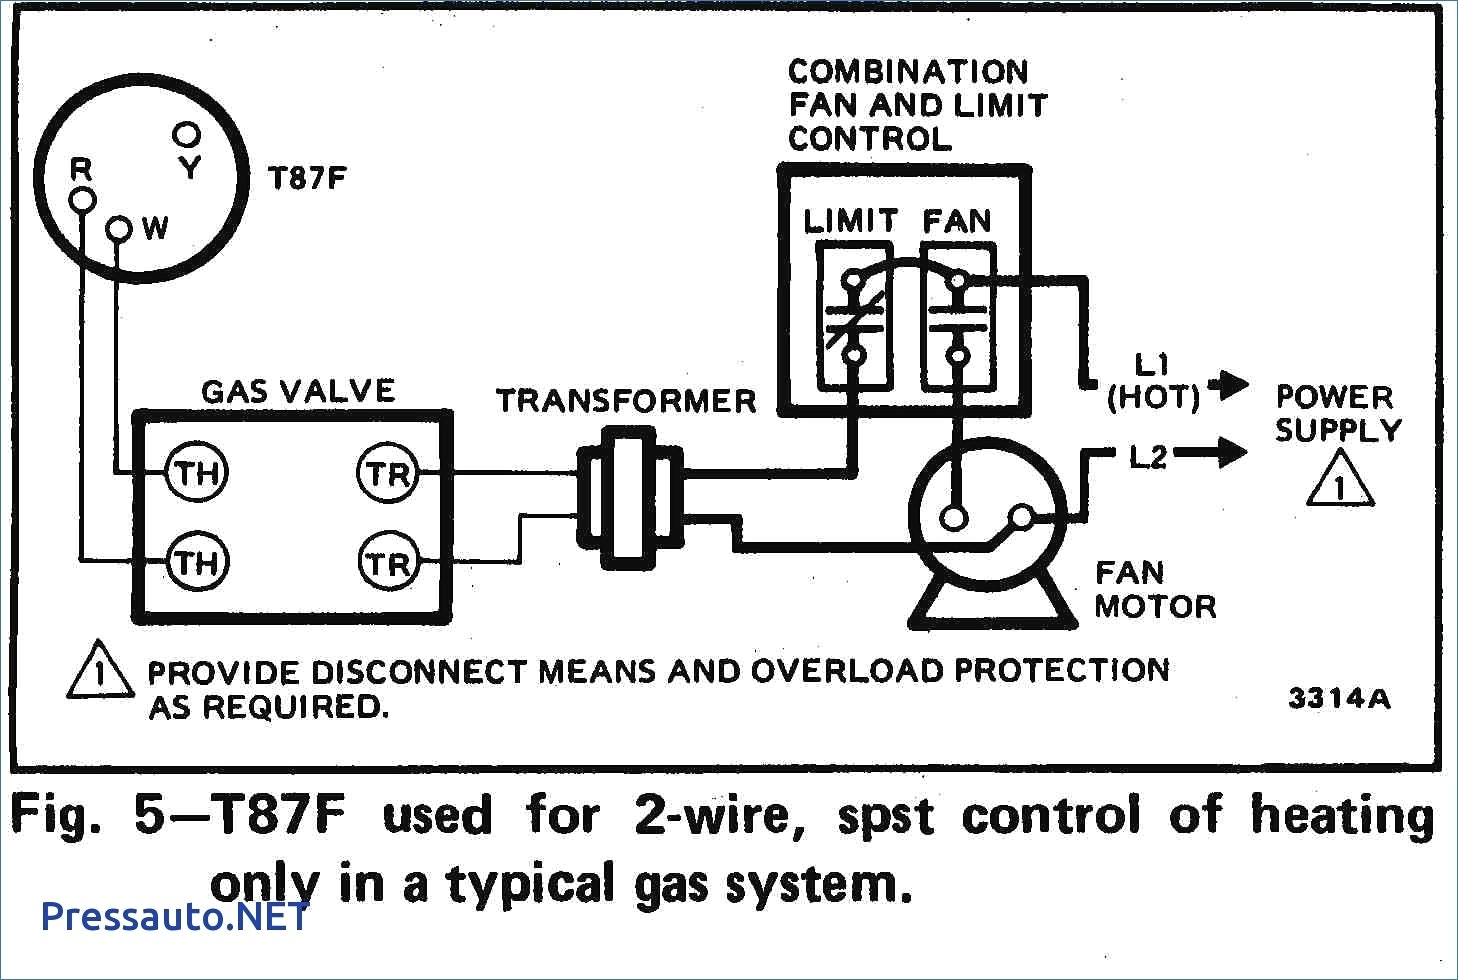 electric furnace diagram, robertshaw ignition control diagram, unit heater exhaust, water heater diagram, unit heater troubleshooting, unit heater installation, groundwater diagram, unit heater parts, modine heater parts diagram, fan coil unit diagram, gas furnace electrical diagram, gas furnace control board diagram, on unit heater wiring diagram